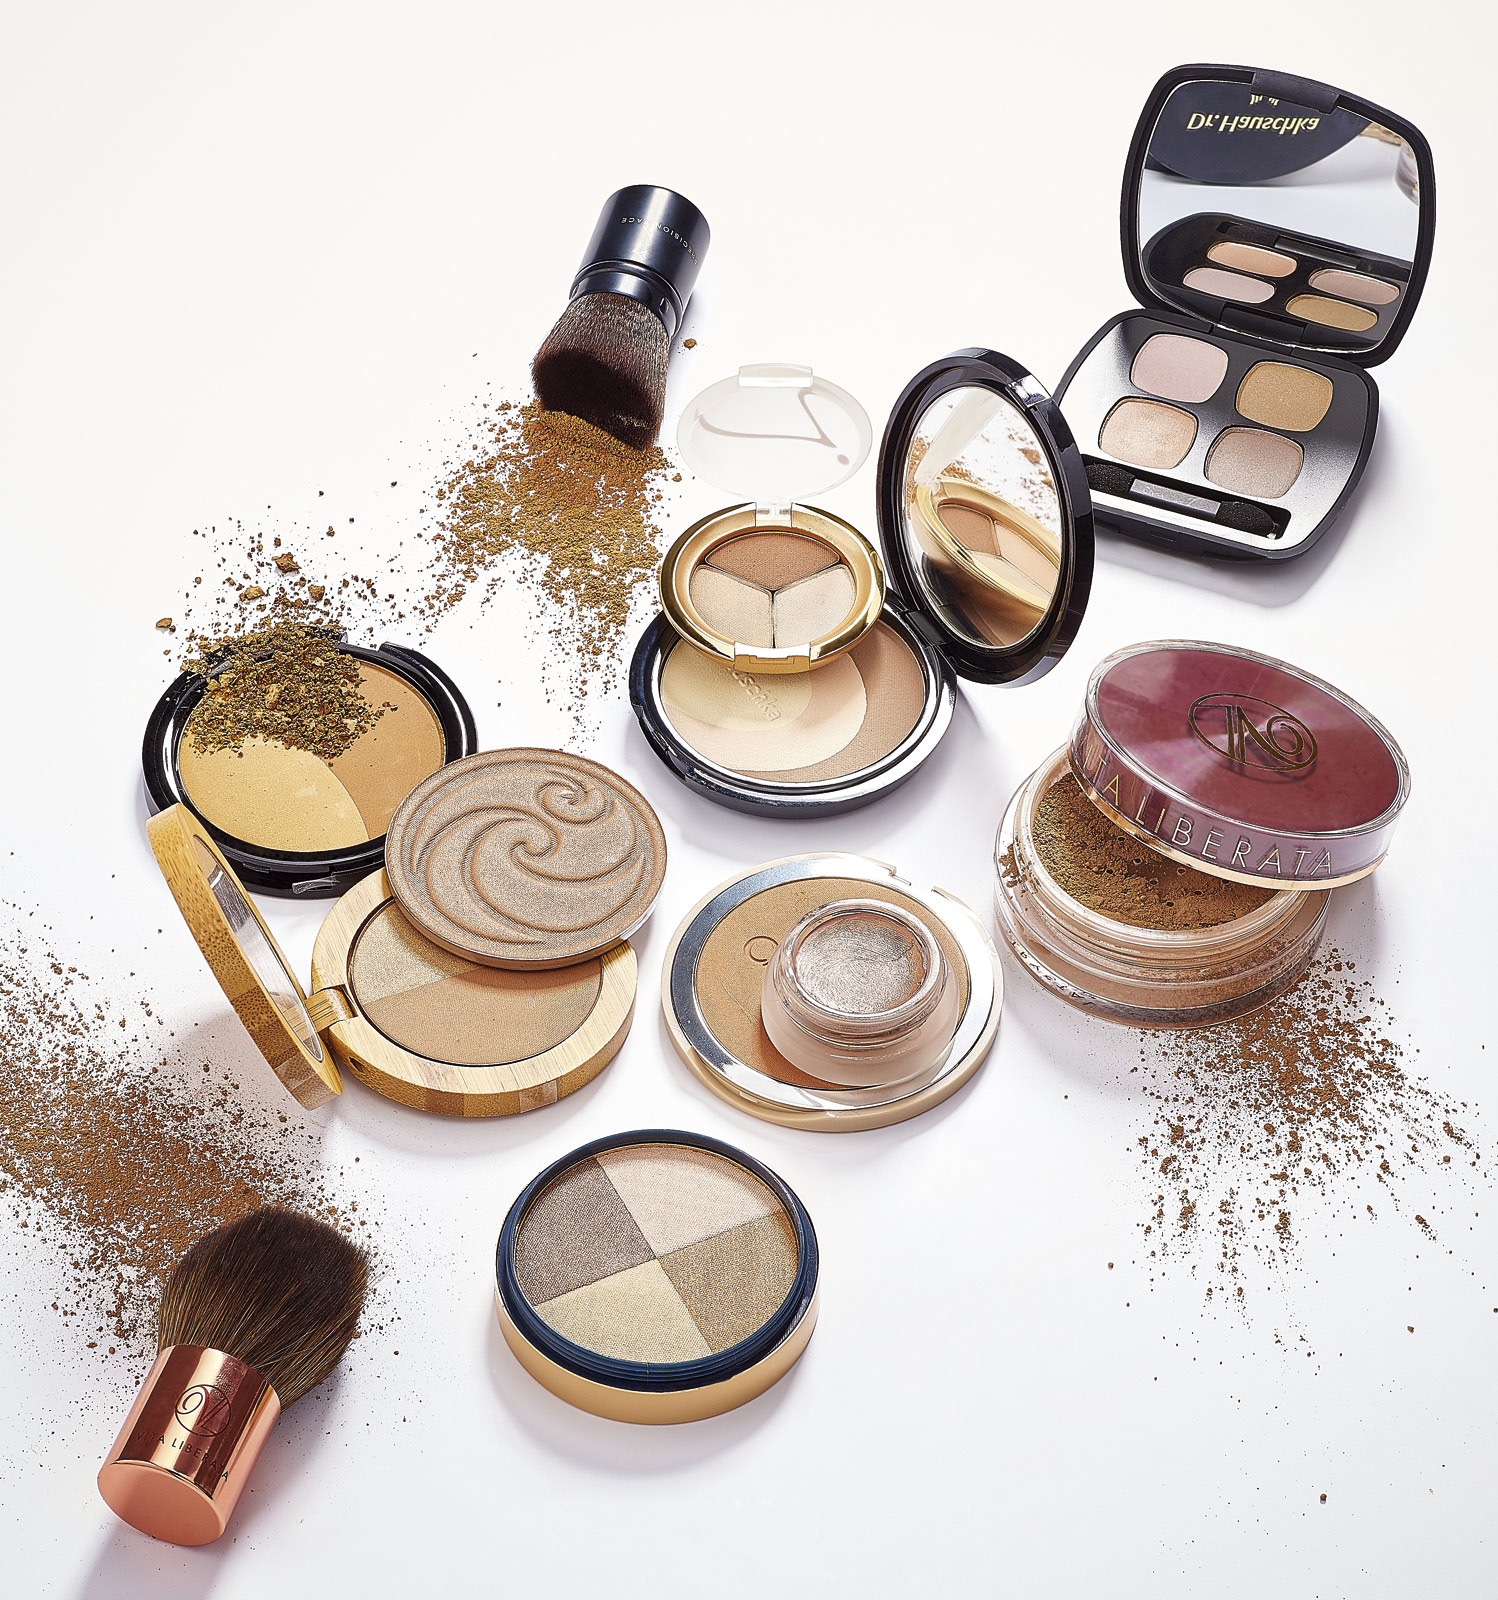 Make up product shot for Natural Health magazine